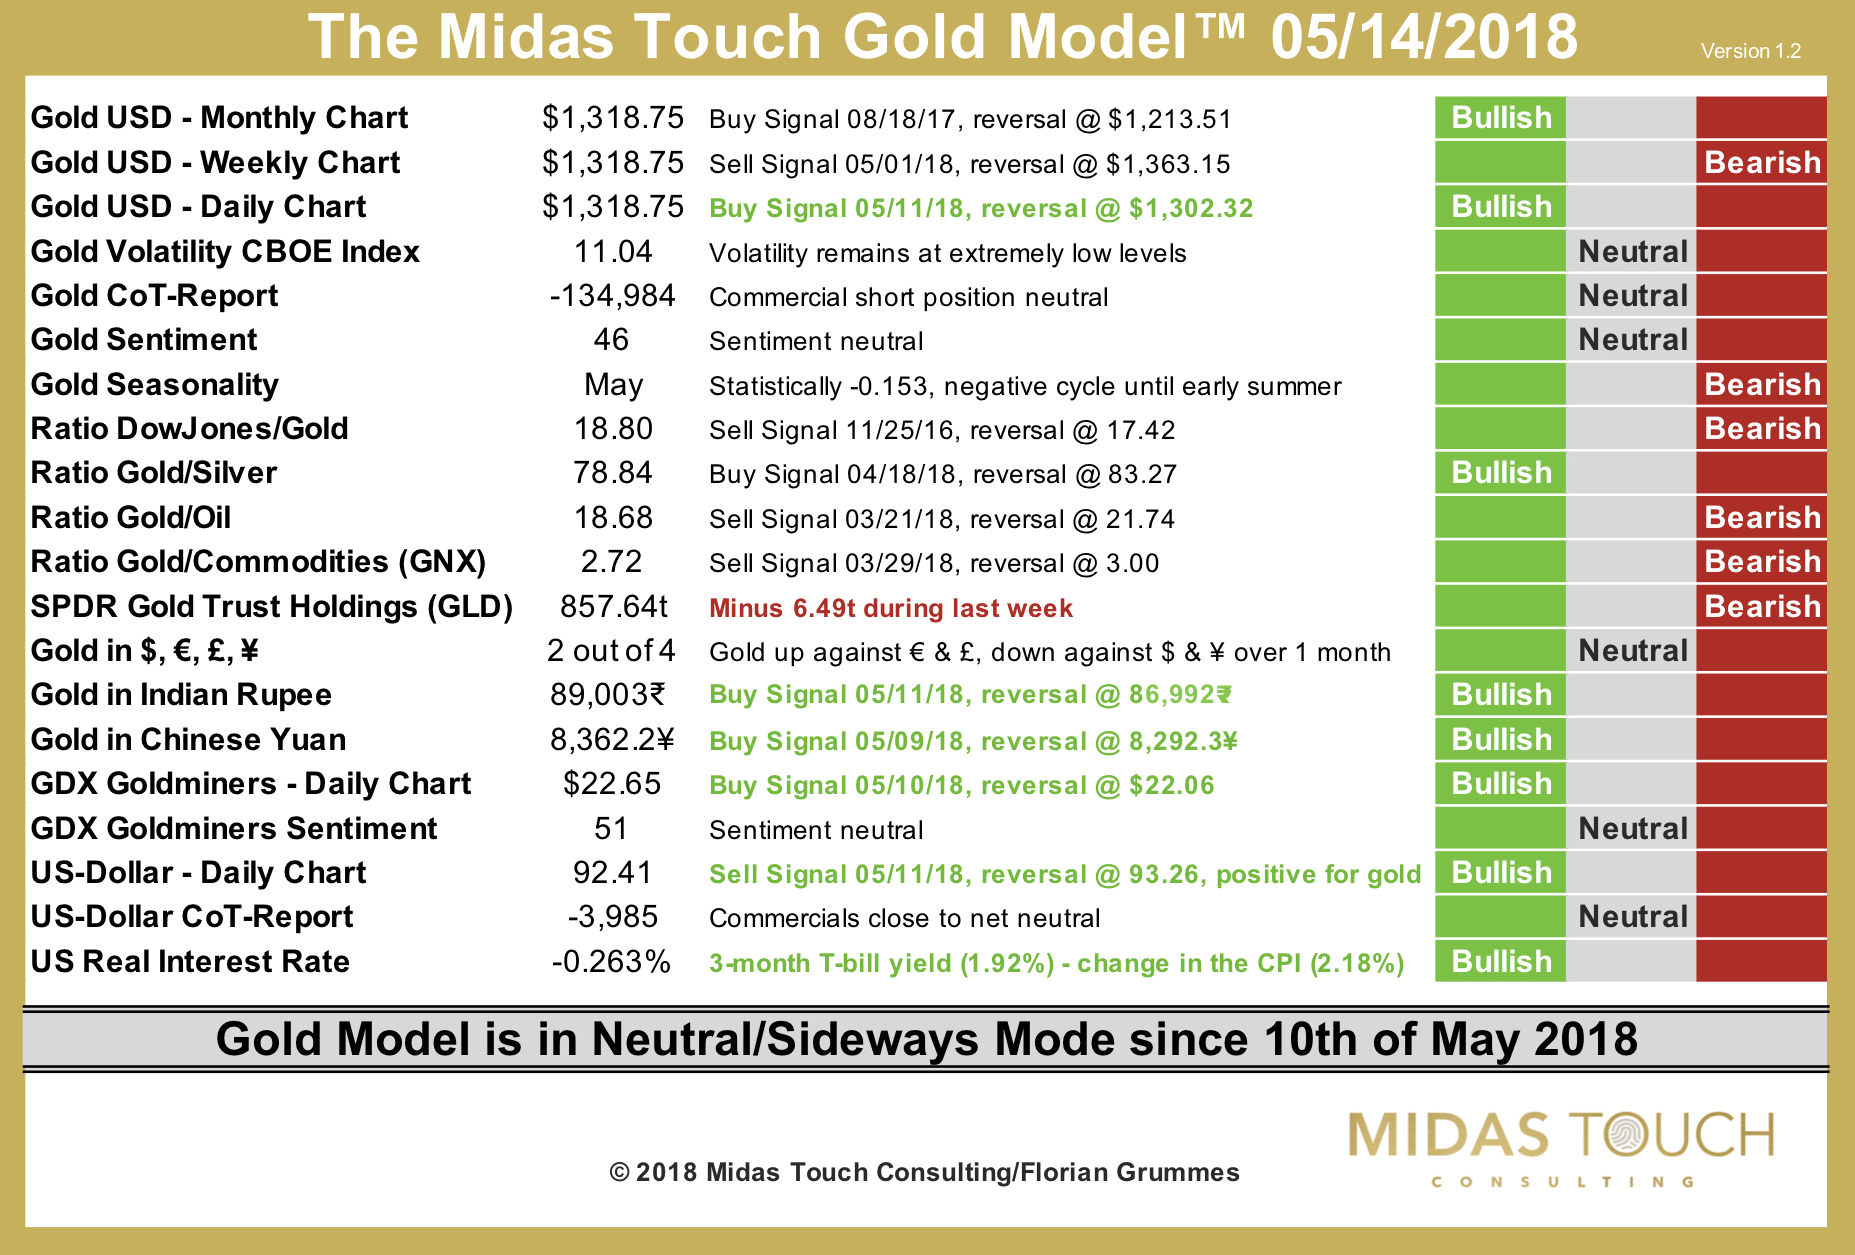 The Midas Touch Gold Model™ as of May 14th, 2018